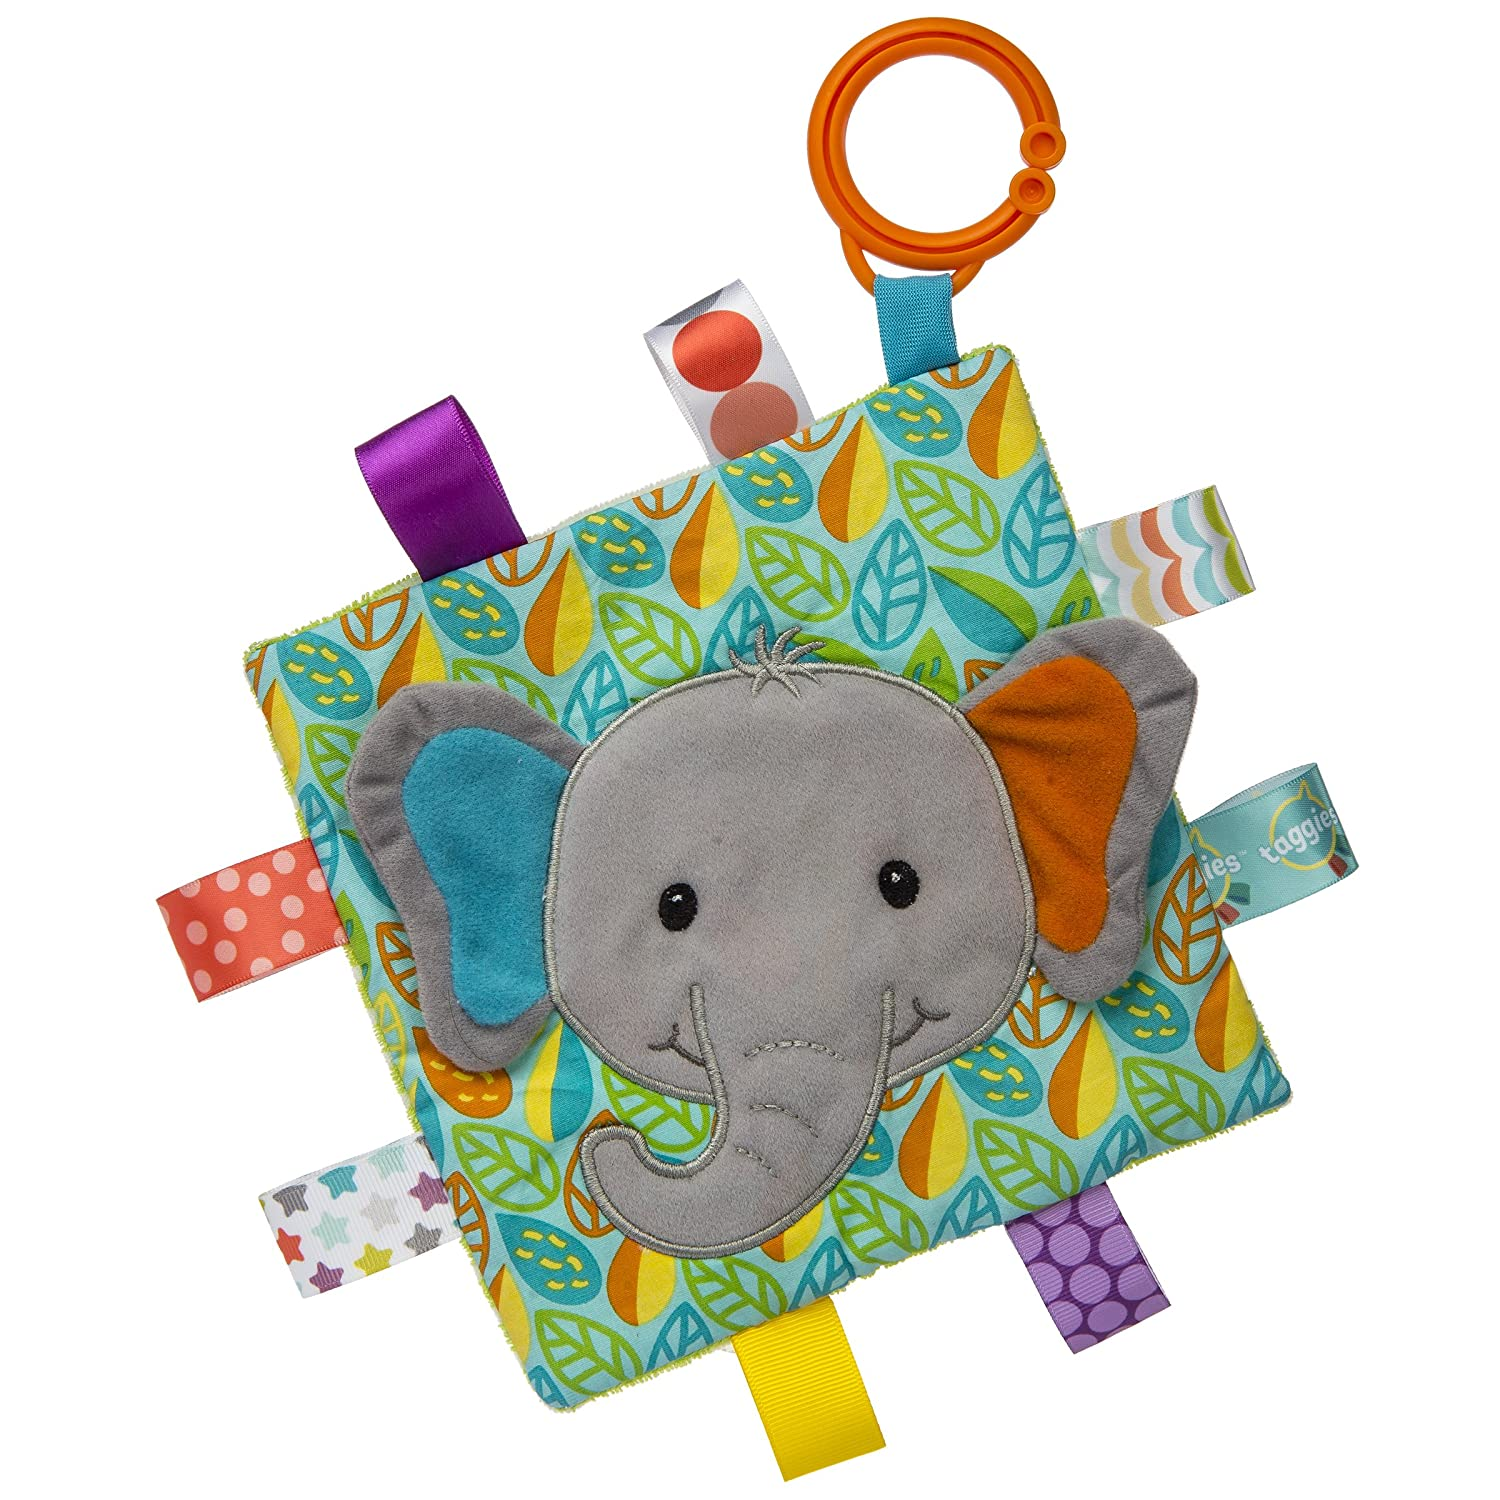 Taggies Crinkle Me Baby Toy, Little Leaf Elephant